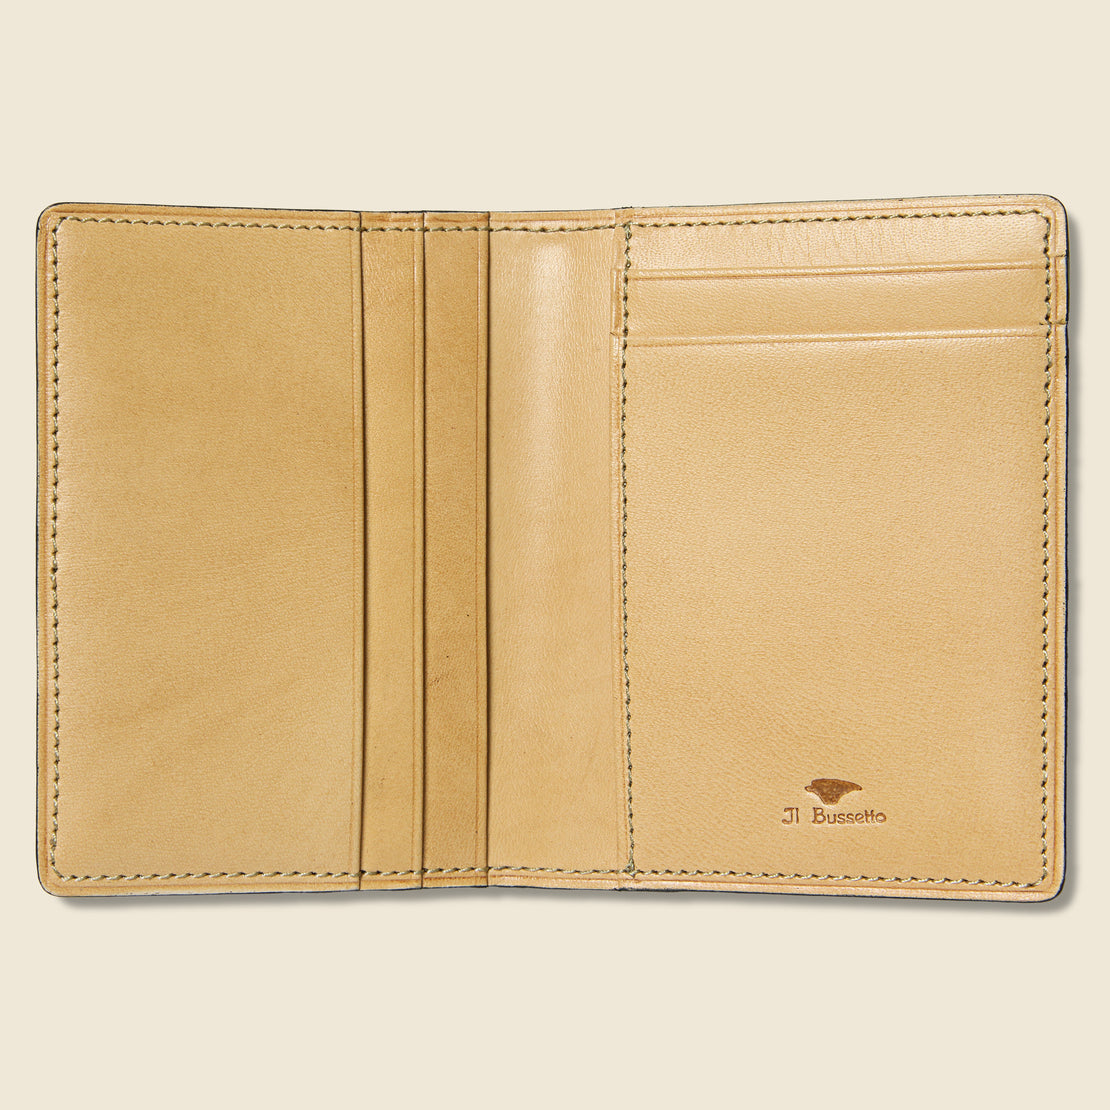 Bi-Fold Card Case - Camel - Il Bussetto - STAG Provisions - Accessories - Wallets